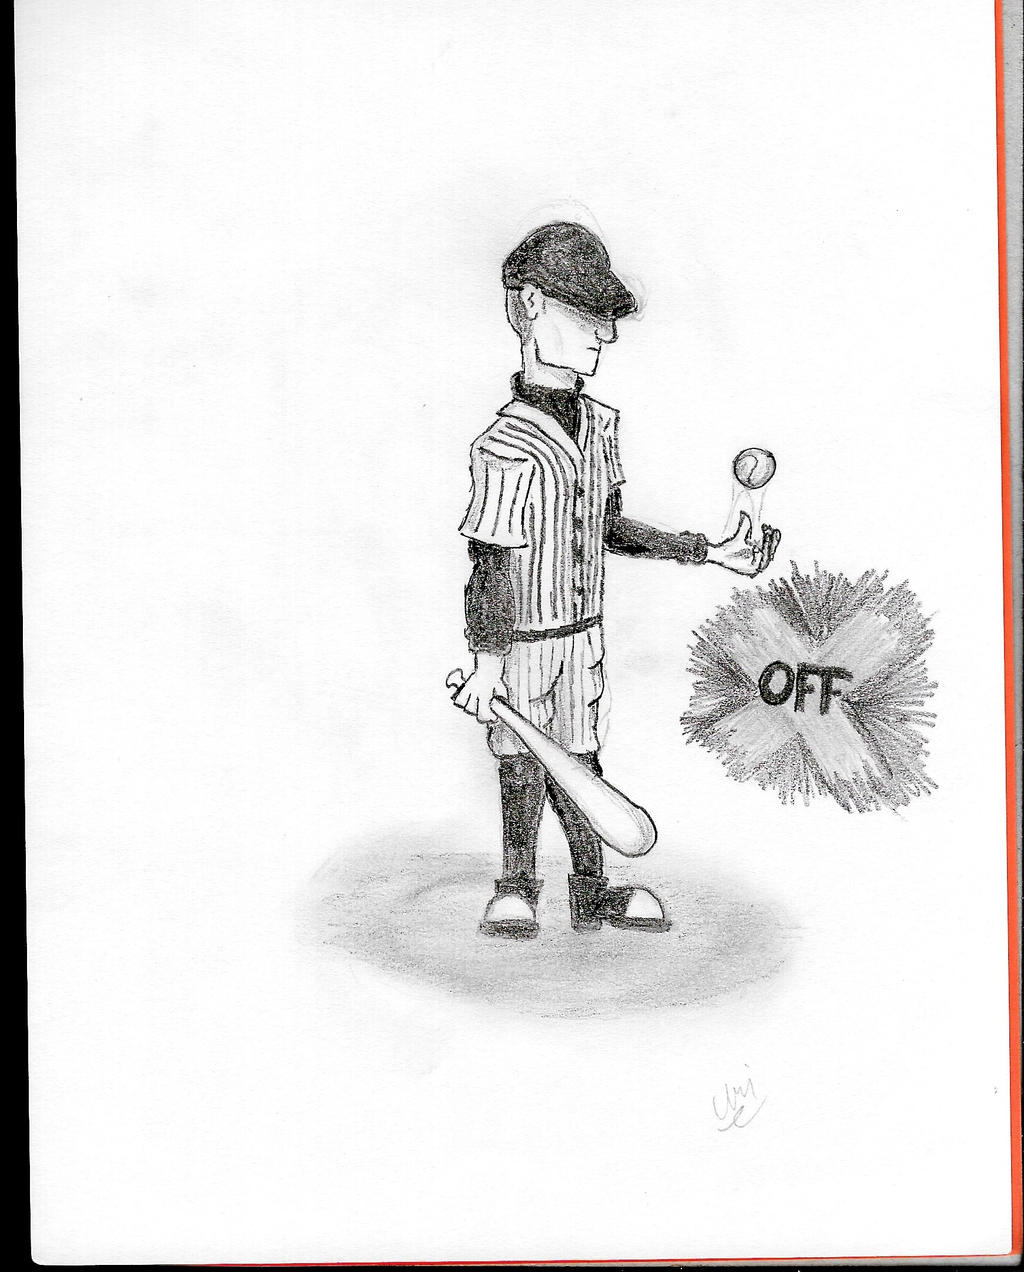 OFF - The Batter 2 by Anhrak